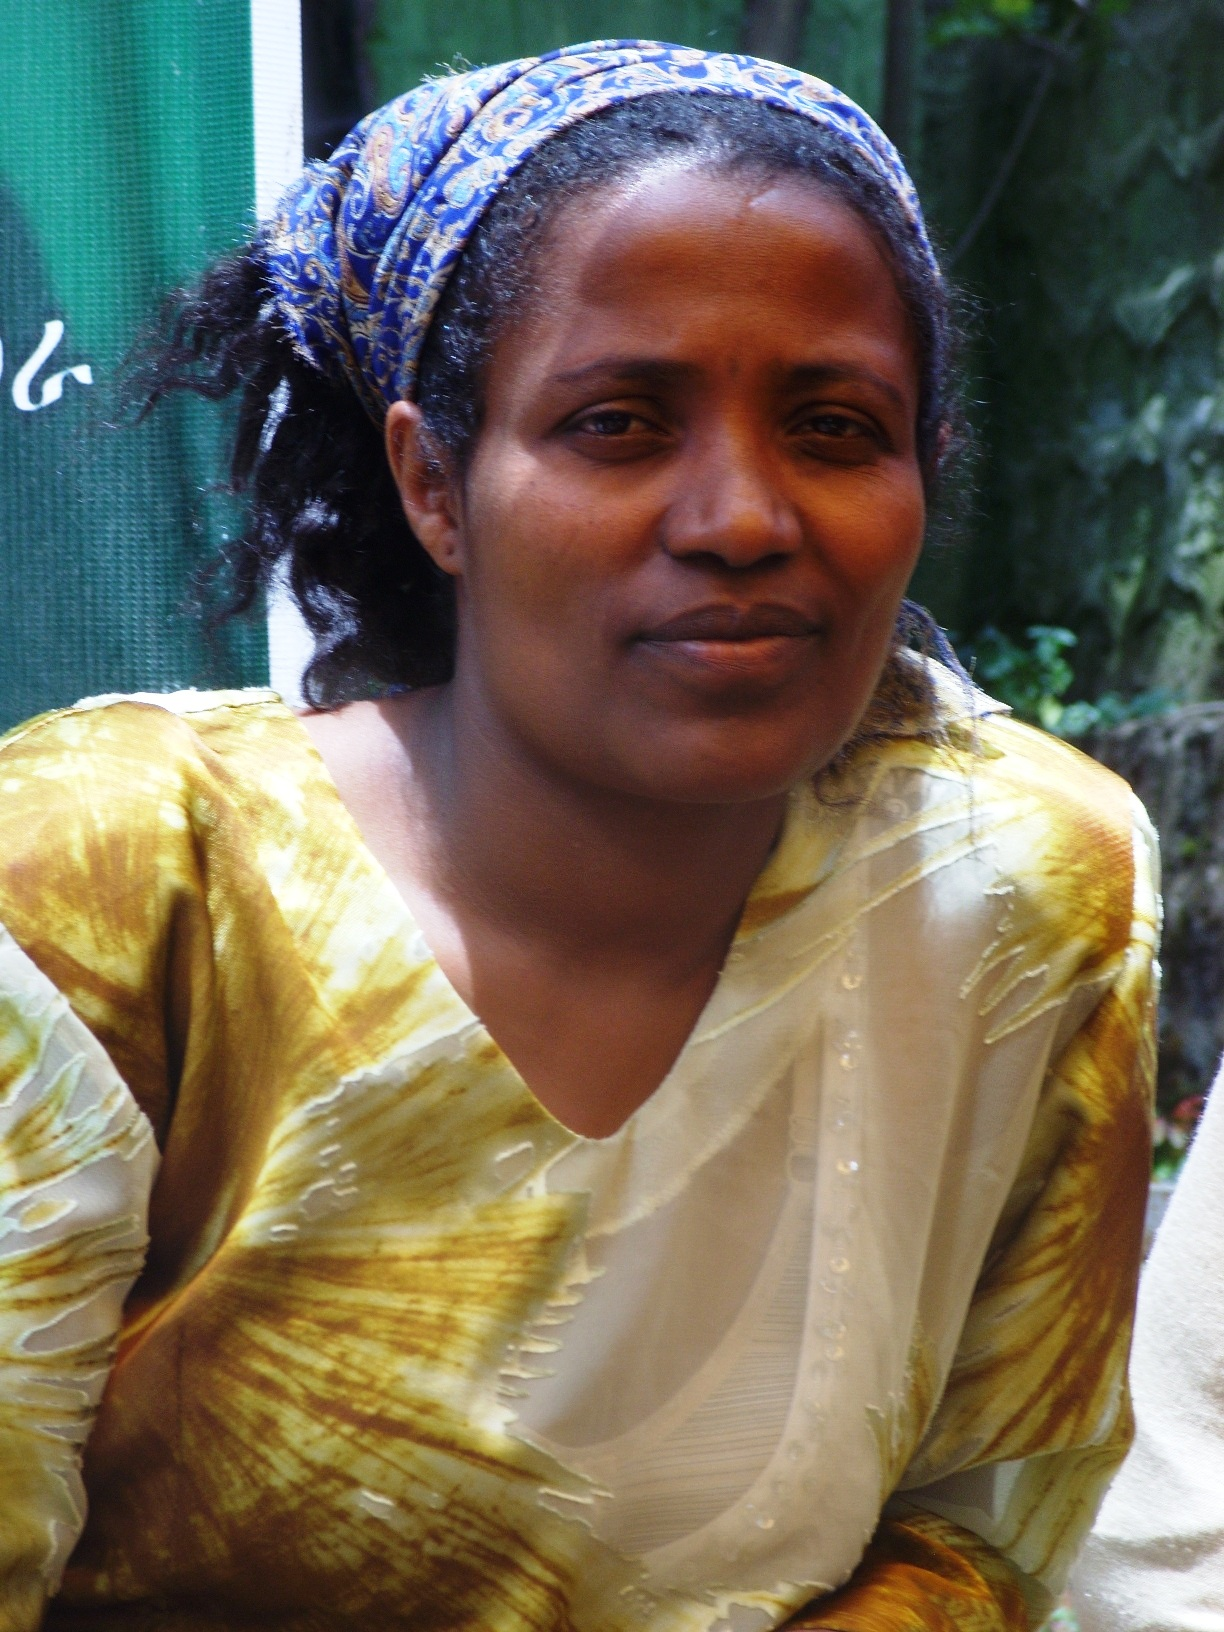 Tsehay Tura, a domestic worker in Addis Ababa living with HIV